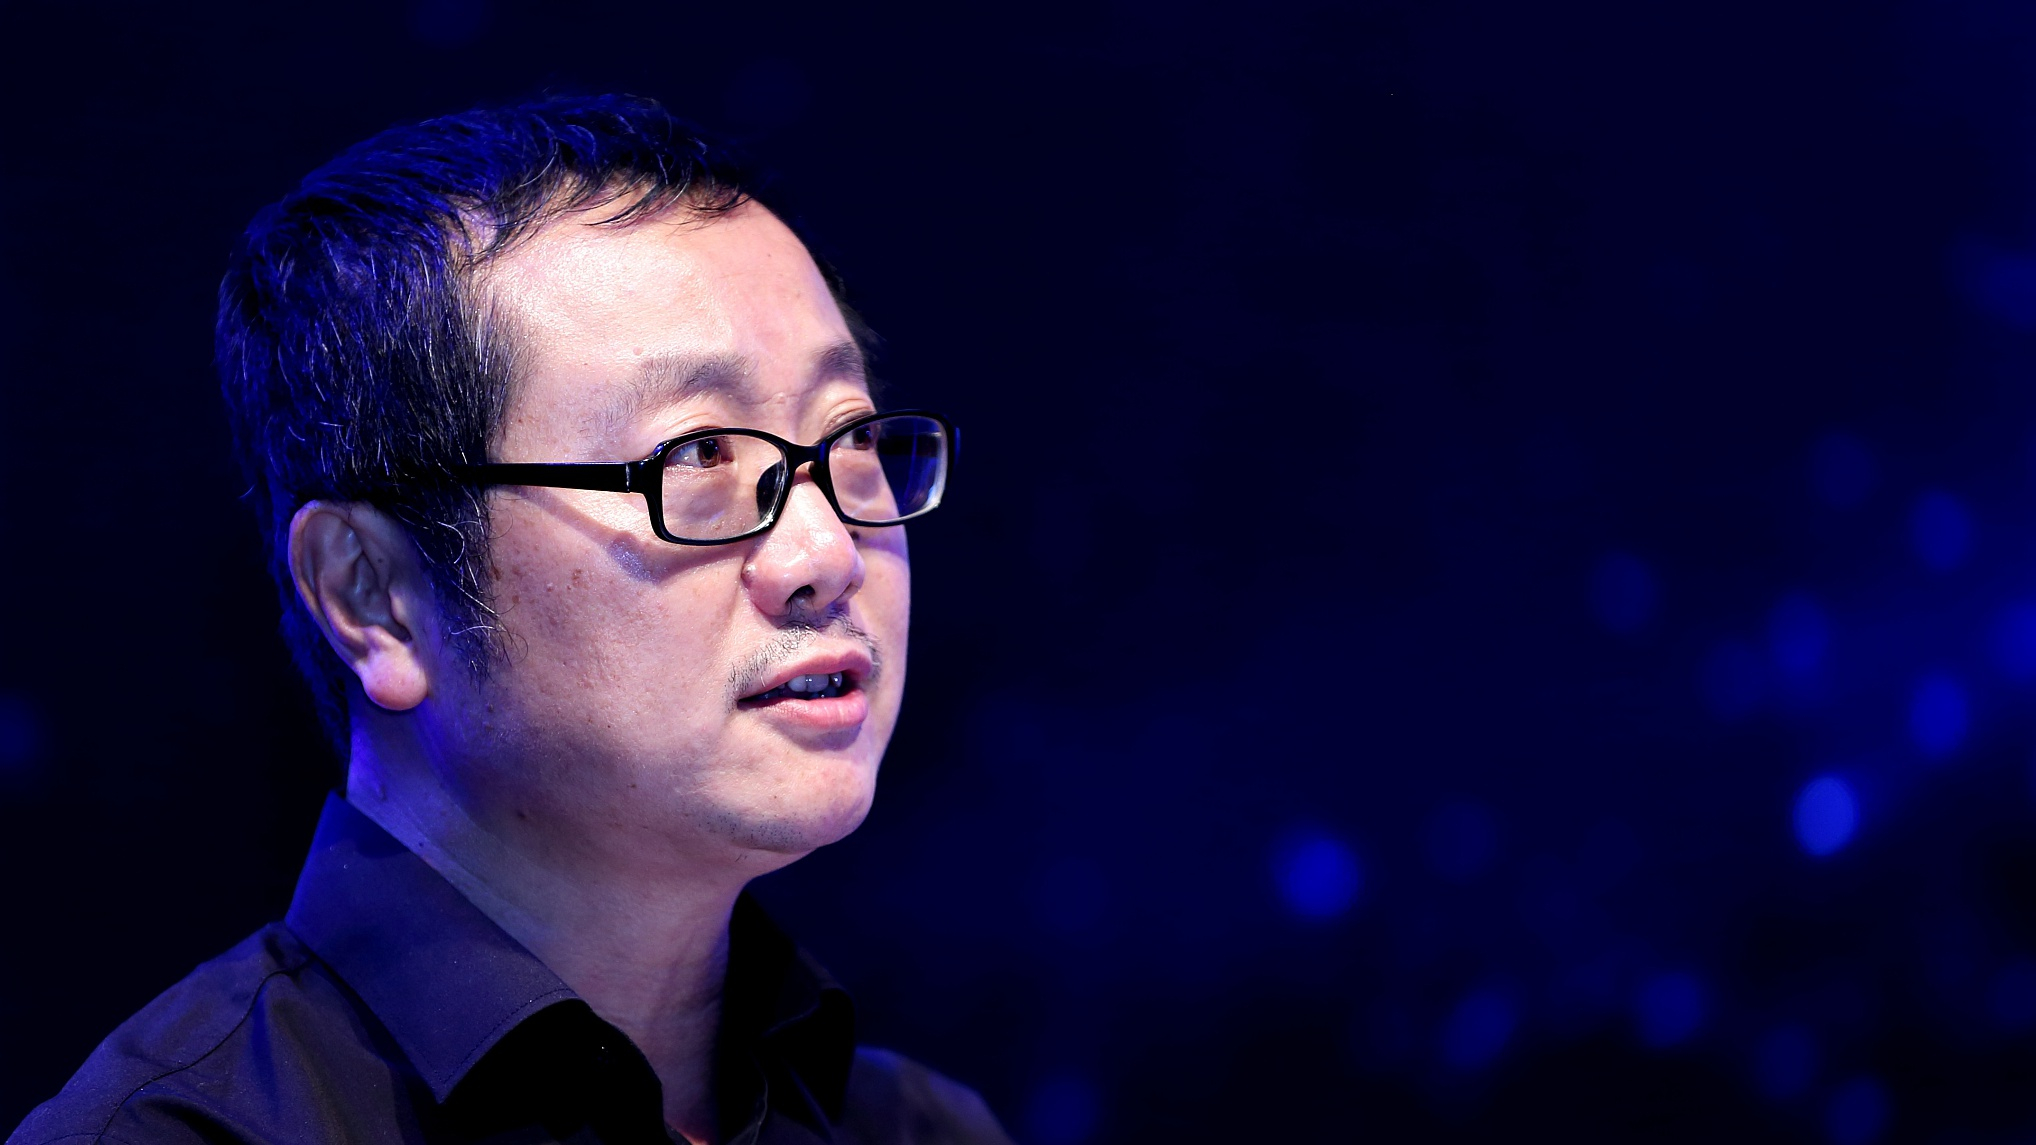 Liu Cixin to publish first work since the Three Body trilogy